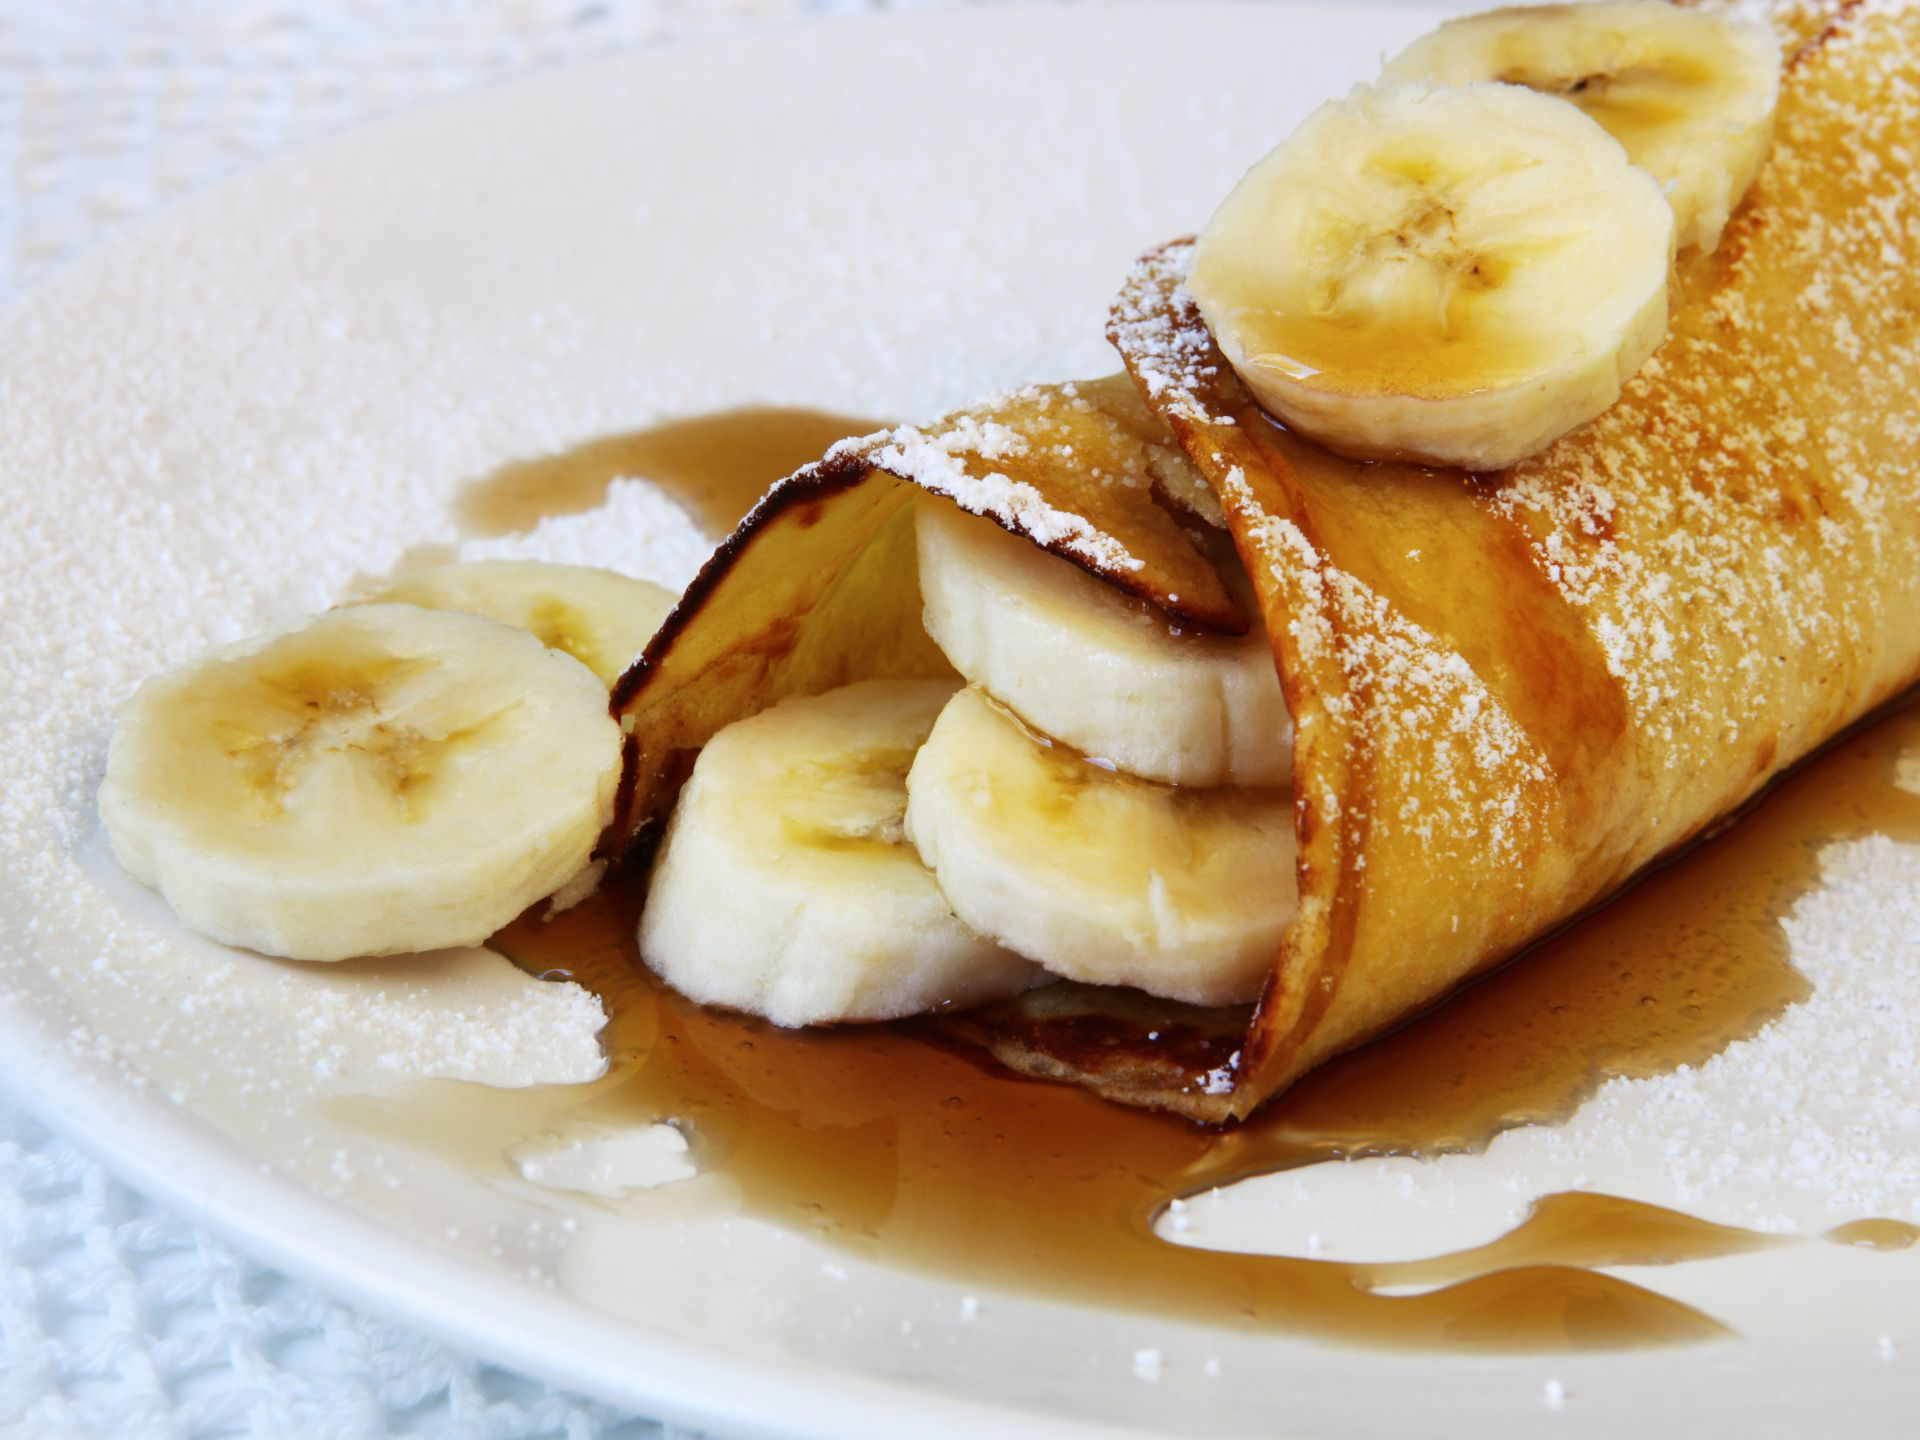 Crepe with Bananas covered in maple syrup